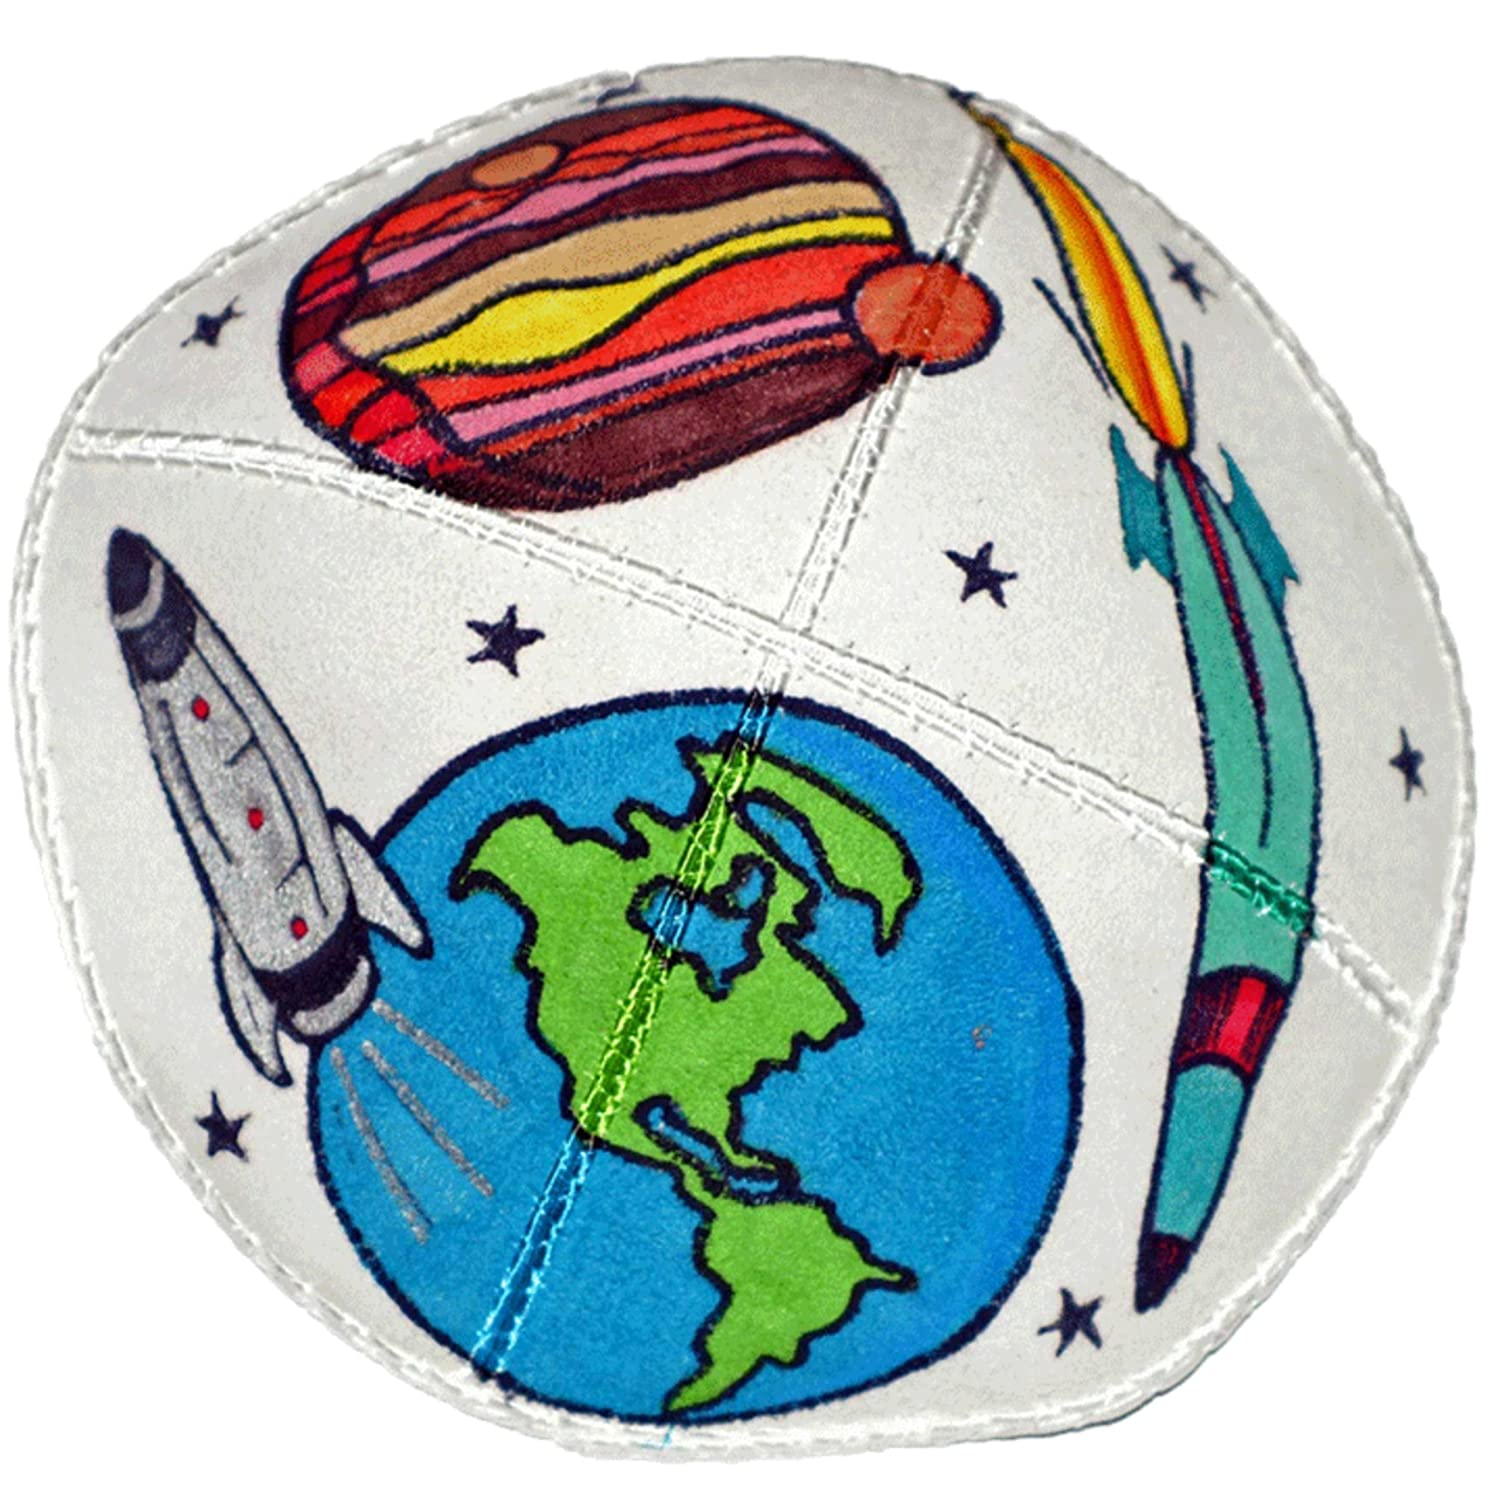 Hand-painted Kippah (Yarmulke) with a Space Theme